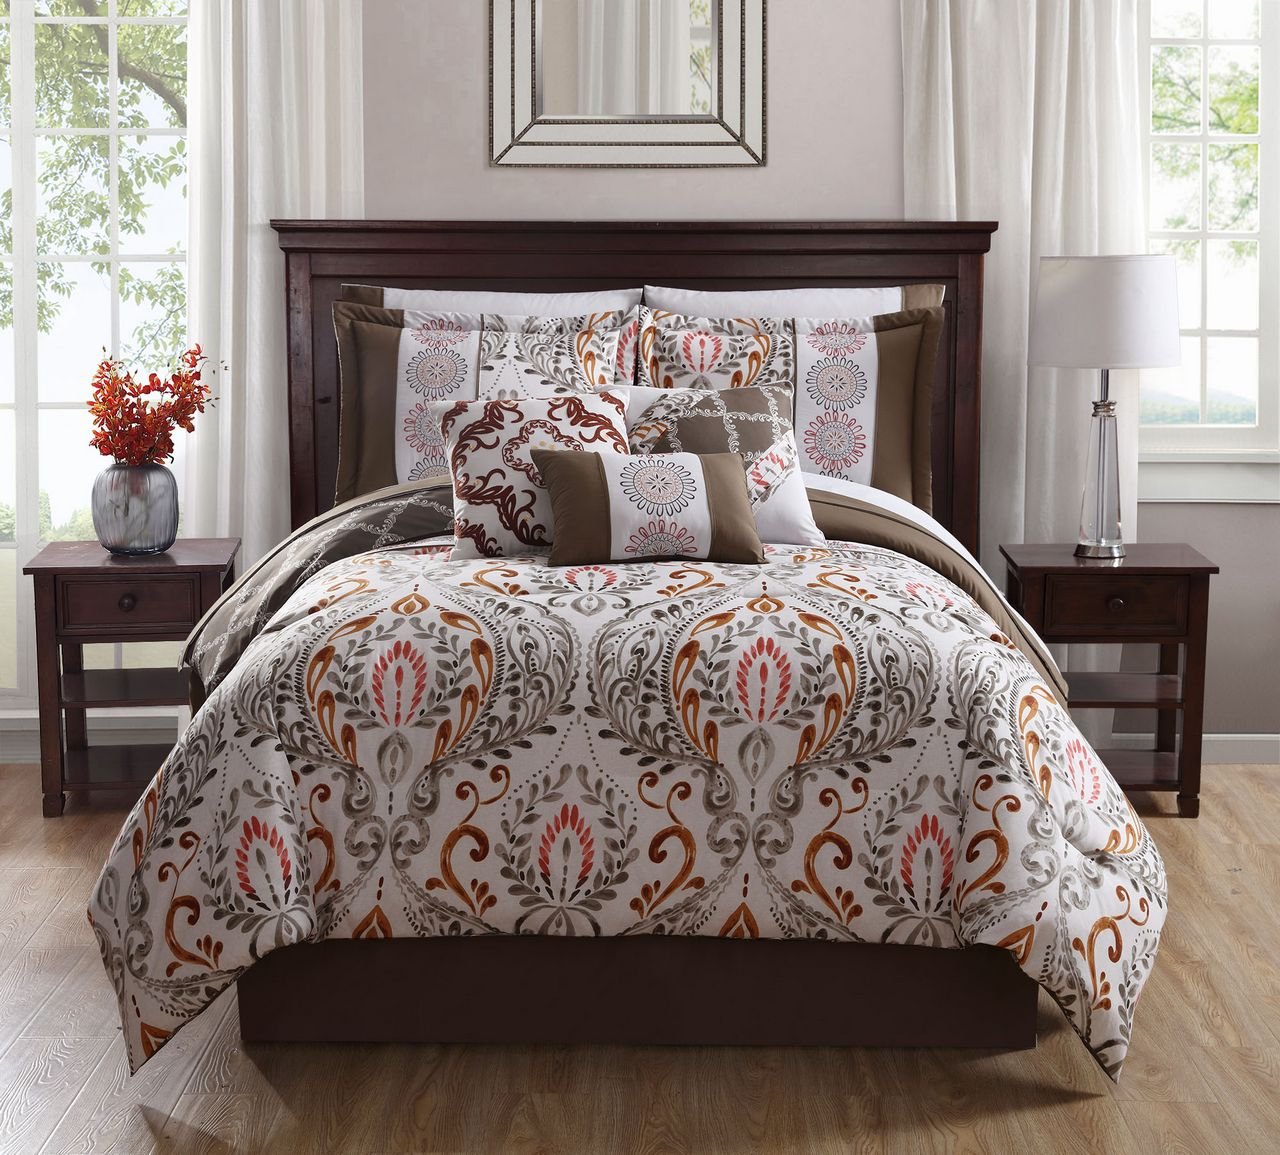 animal set p comforter sets bedding monochromatic print ivory coast